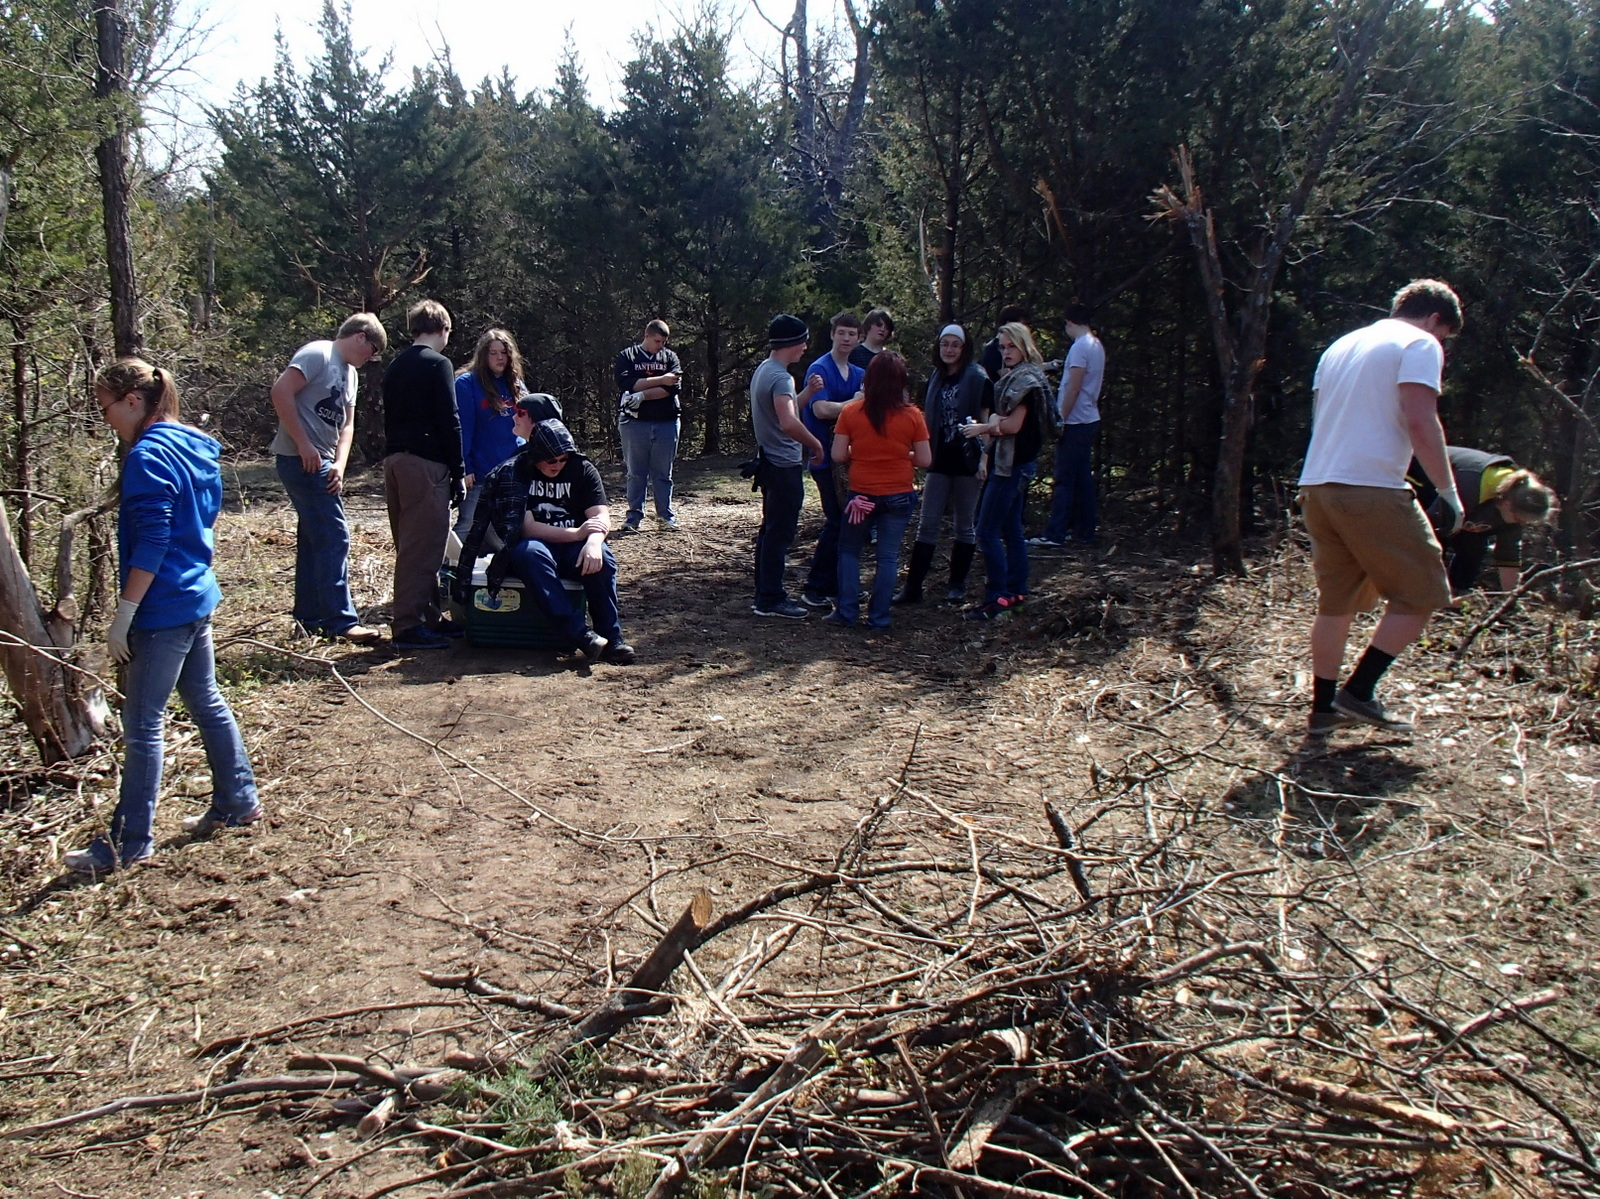 Upward Bound Volunteers Help Clear the Lehigh Portland Trails